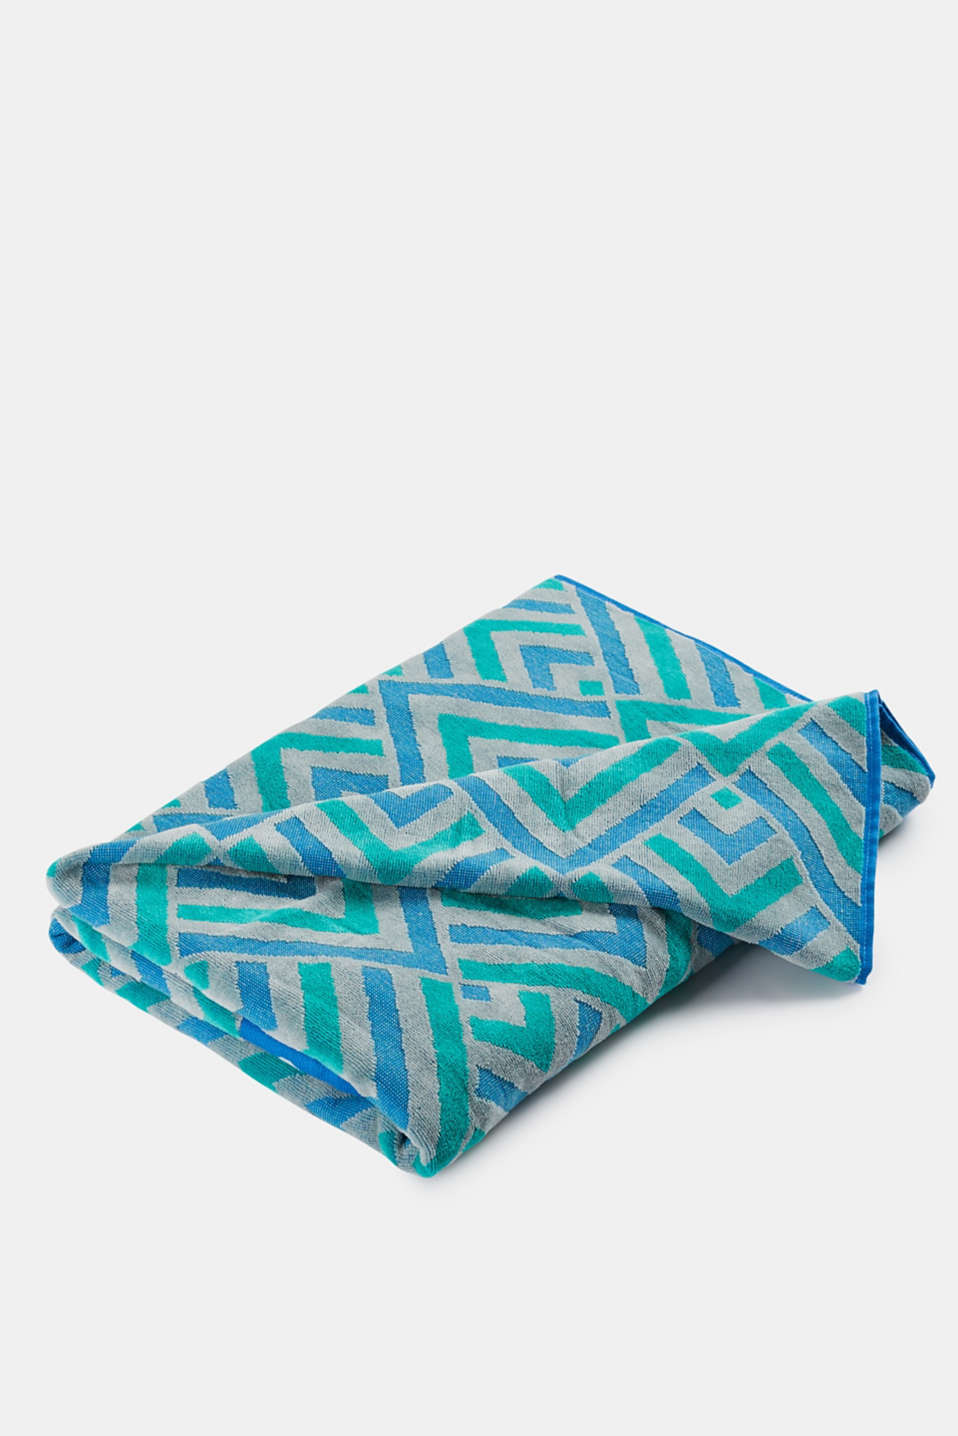 Cotton beach towel with a zigzag pattern